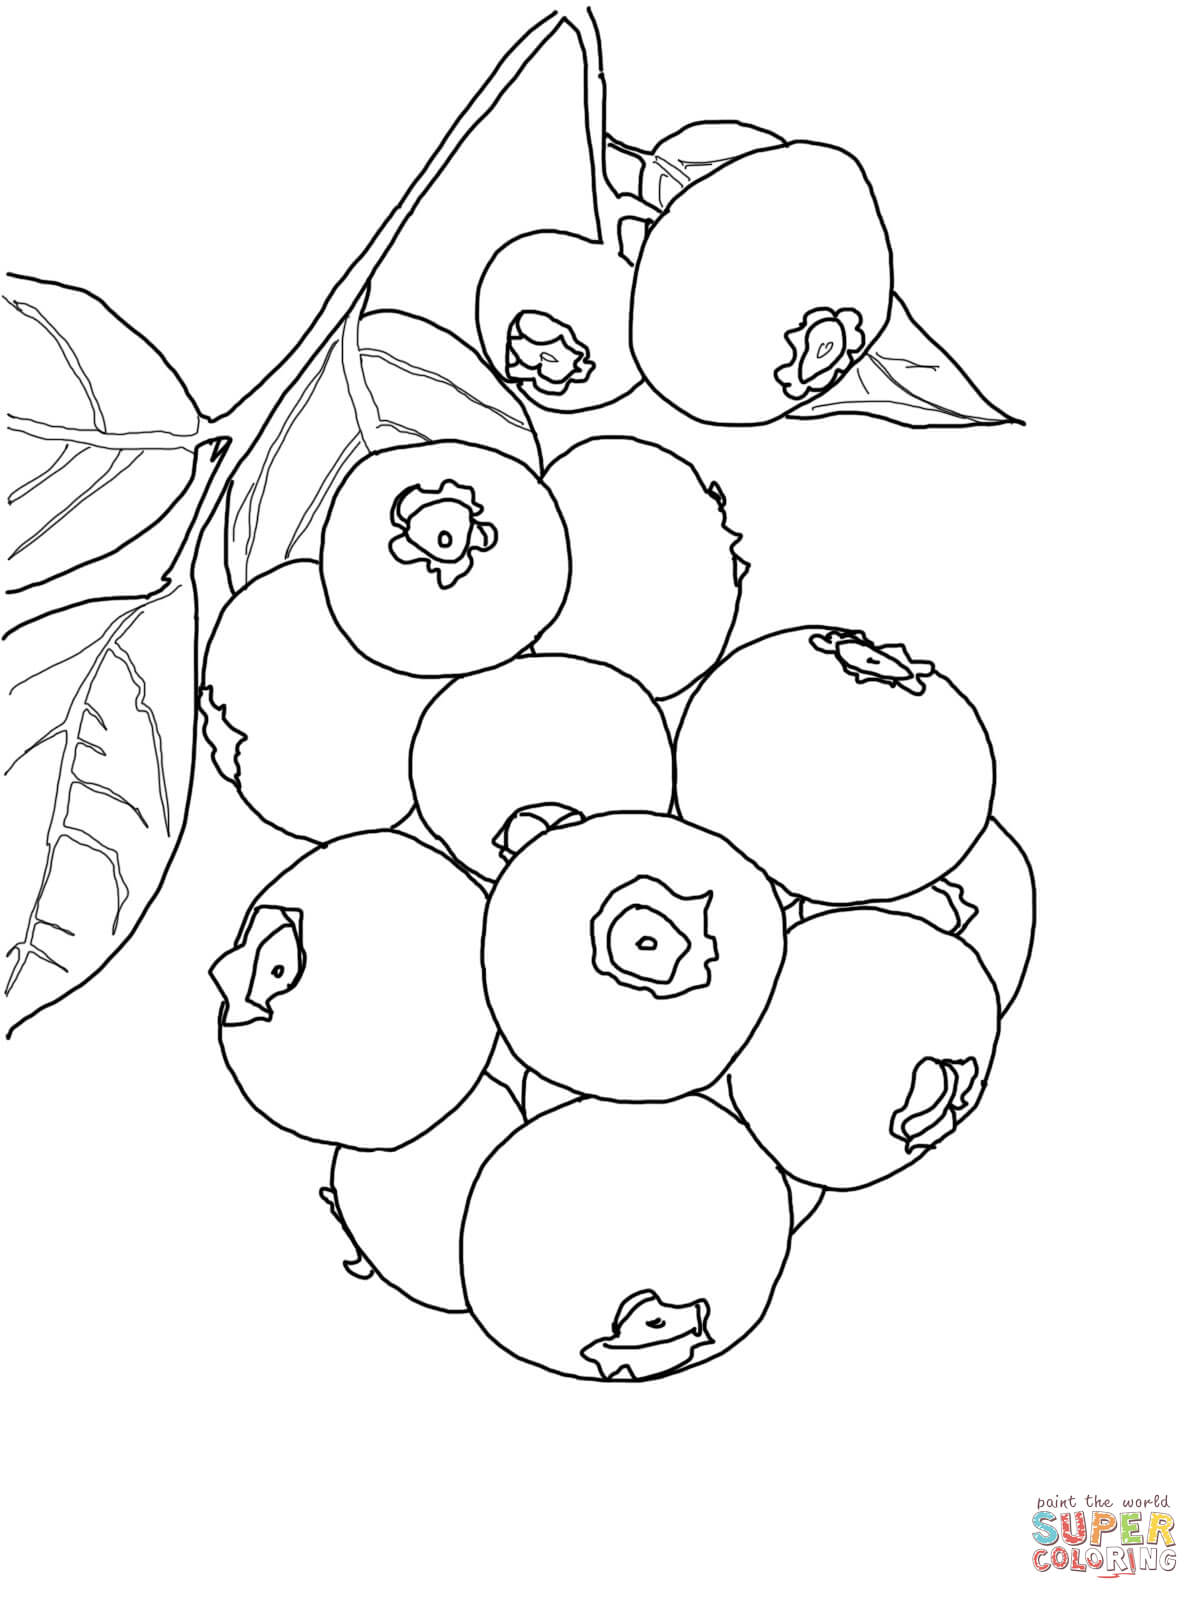 Blueberry Coloring Pages Free